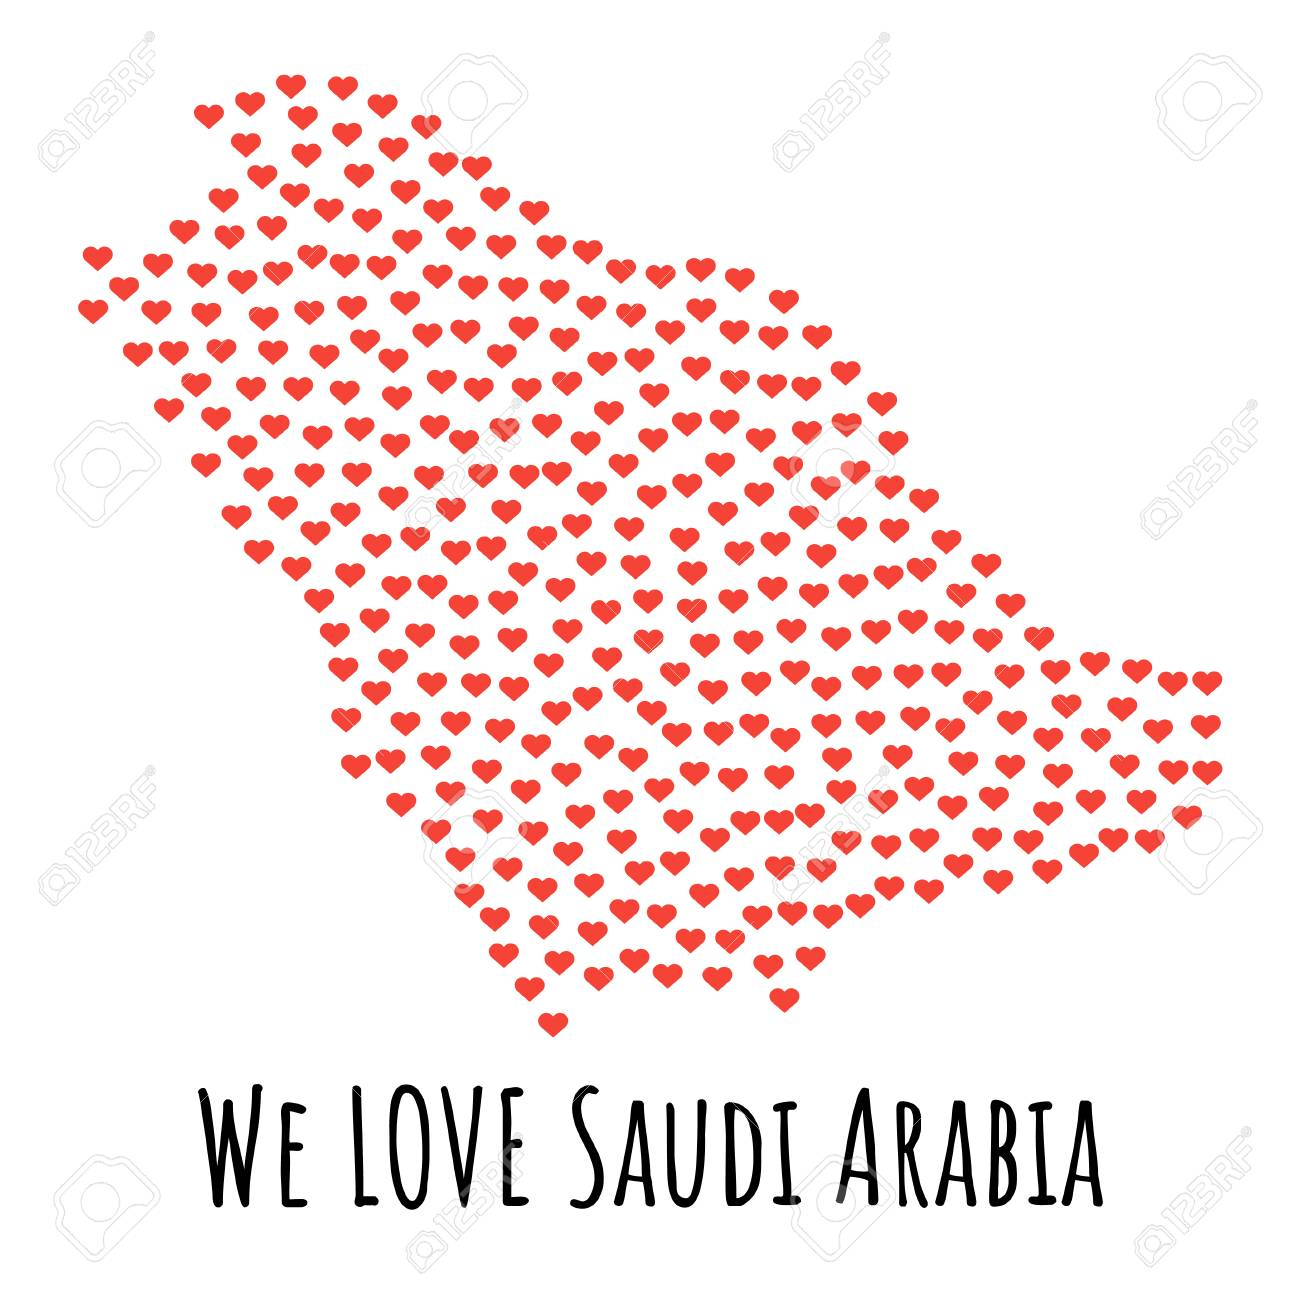 Saudi Arabia Map With Red Hearts Symbol Of Love Abstract